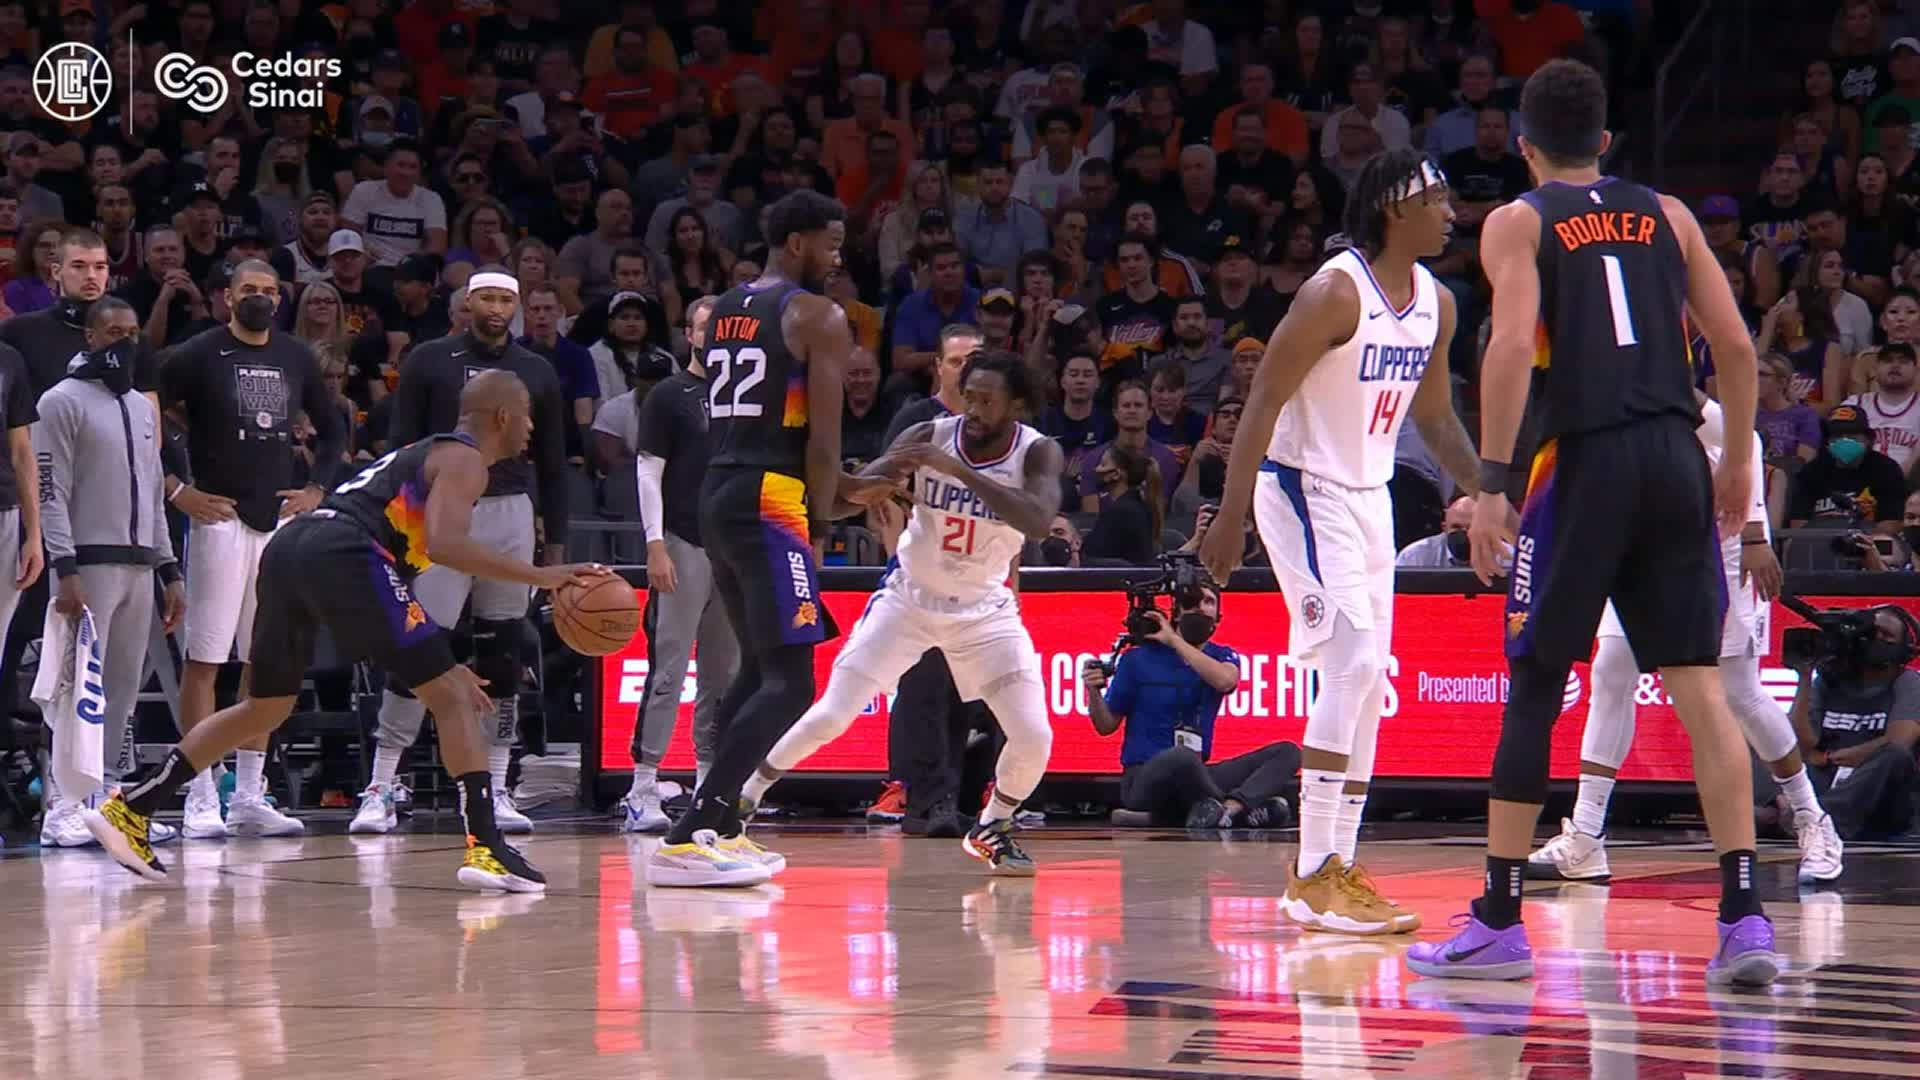 Cedars-Sinai Preventive Play of the Game | Clippers vs Suns Game 5 (6.28.21)